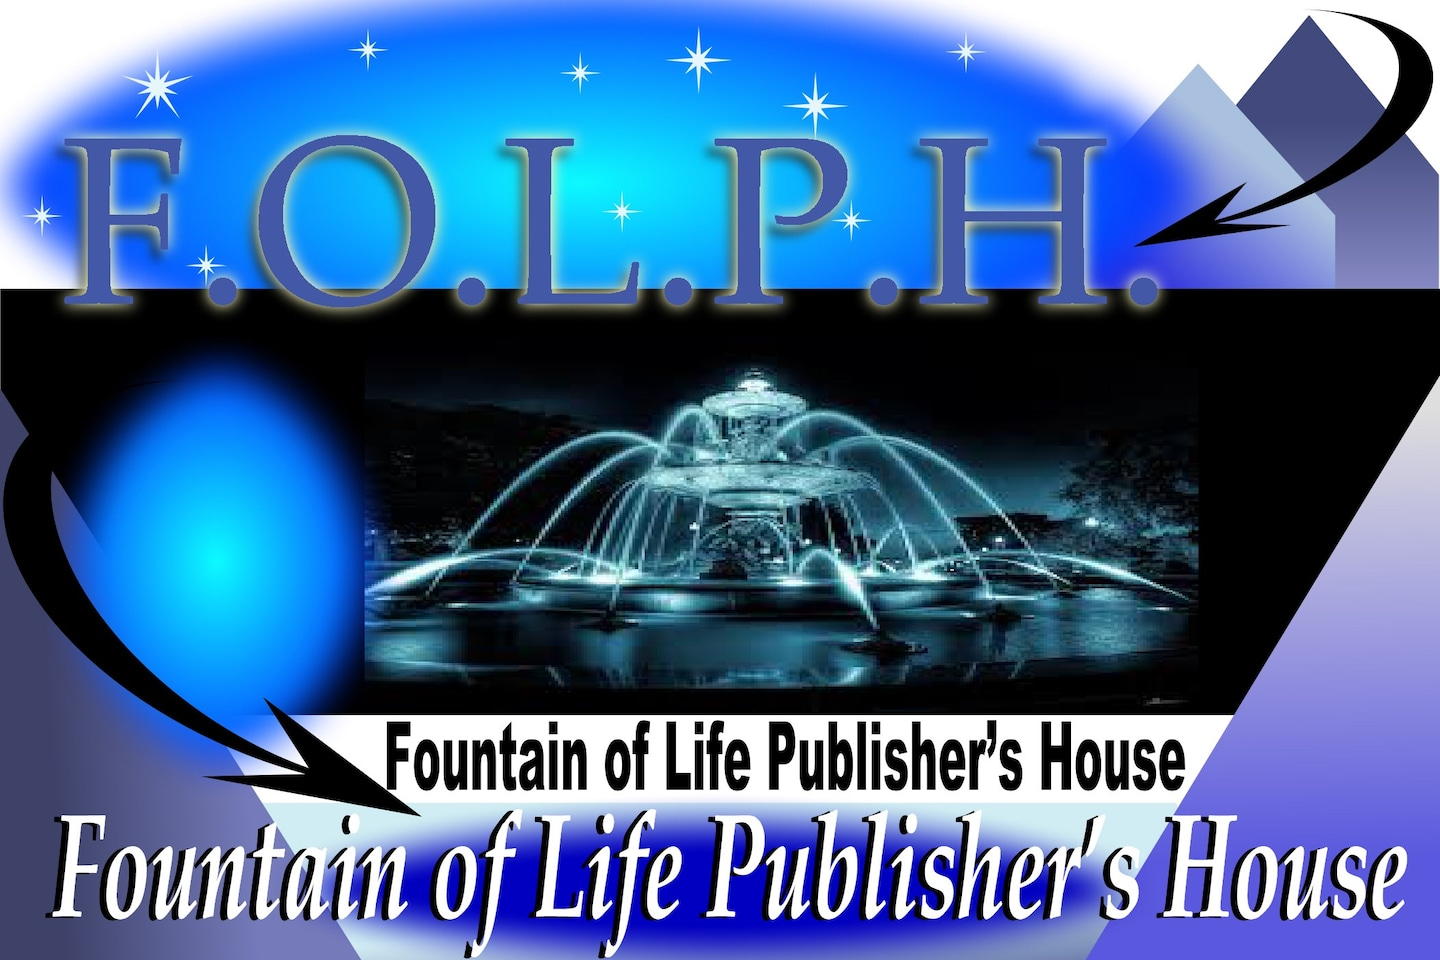 Fountains of Life Publisher House